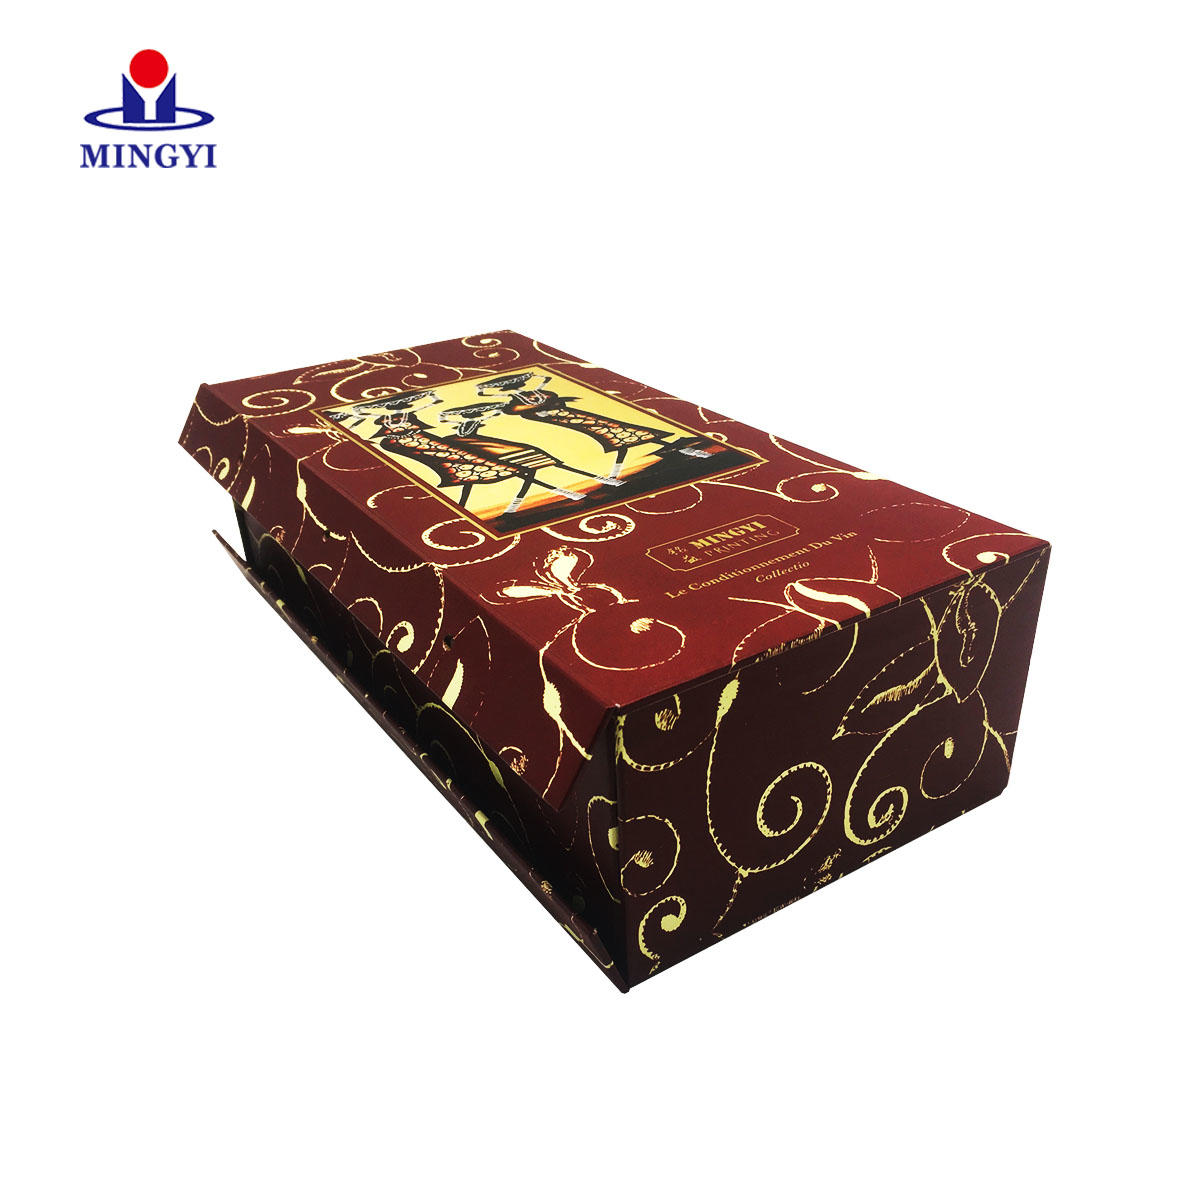 Mingyi Printing New custom gift boxes manufacturers for phone-1